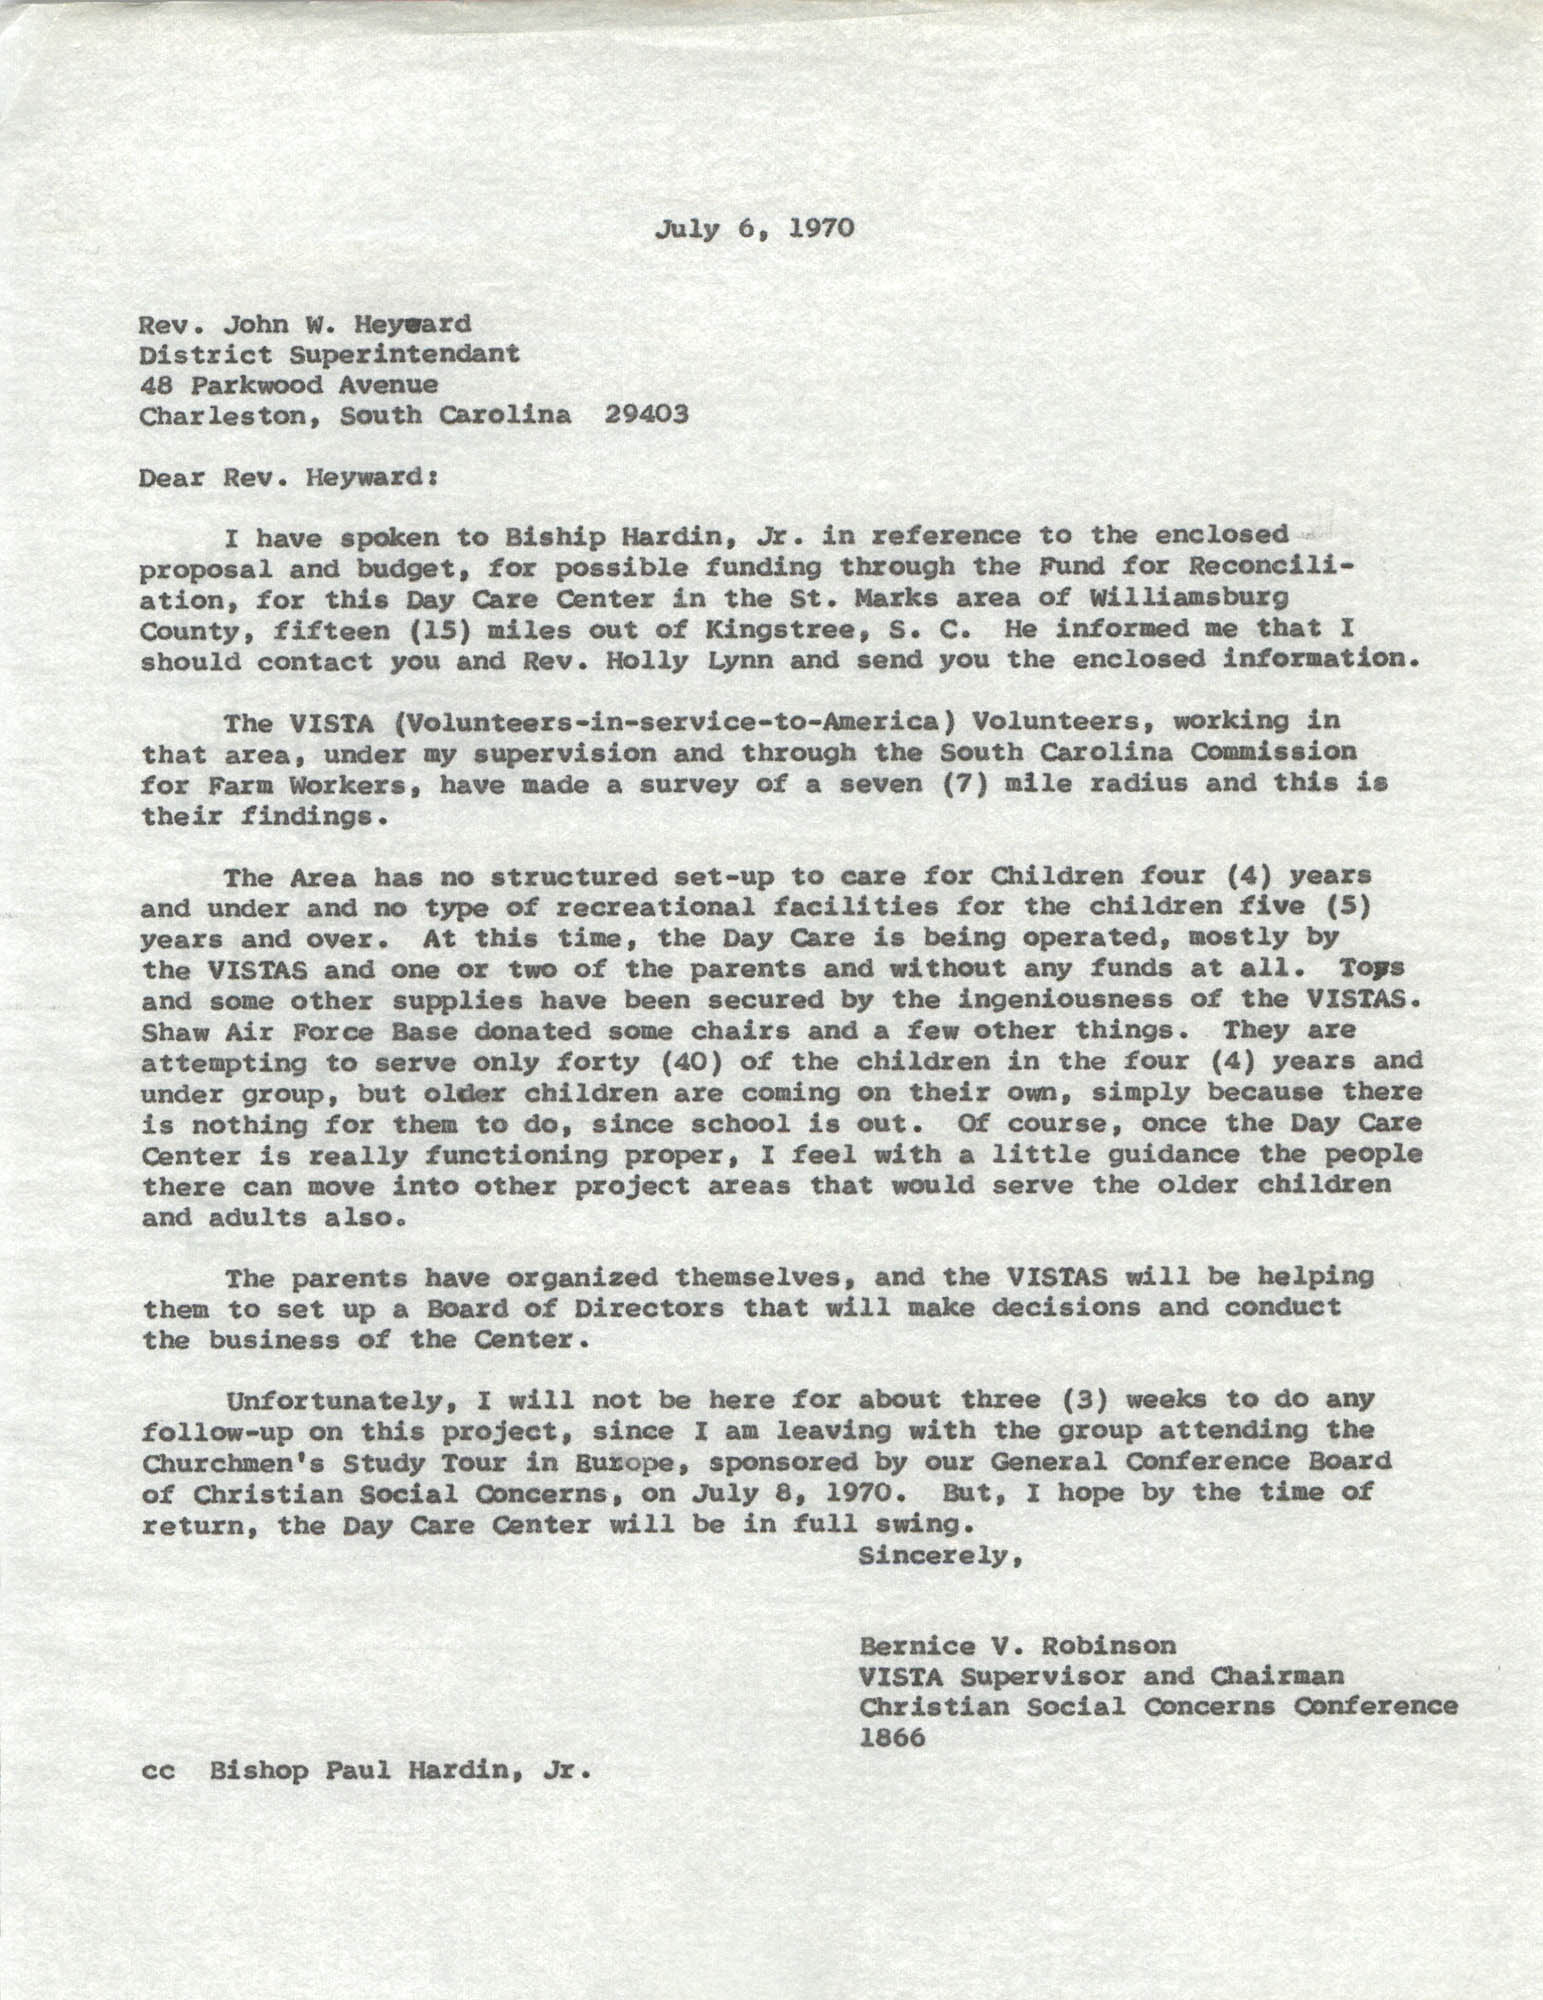 Letter from Bernice V. Robinson to John W. Heyward, July 6, 1970